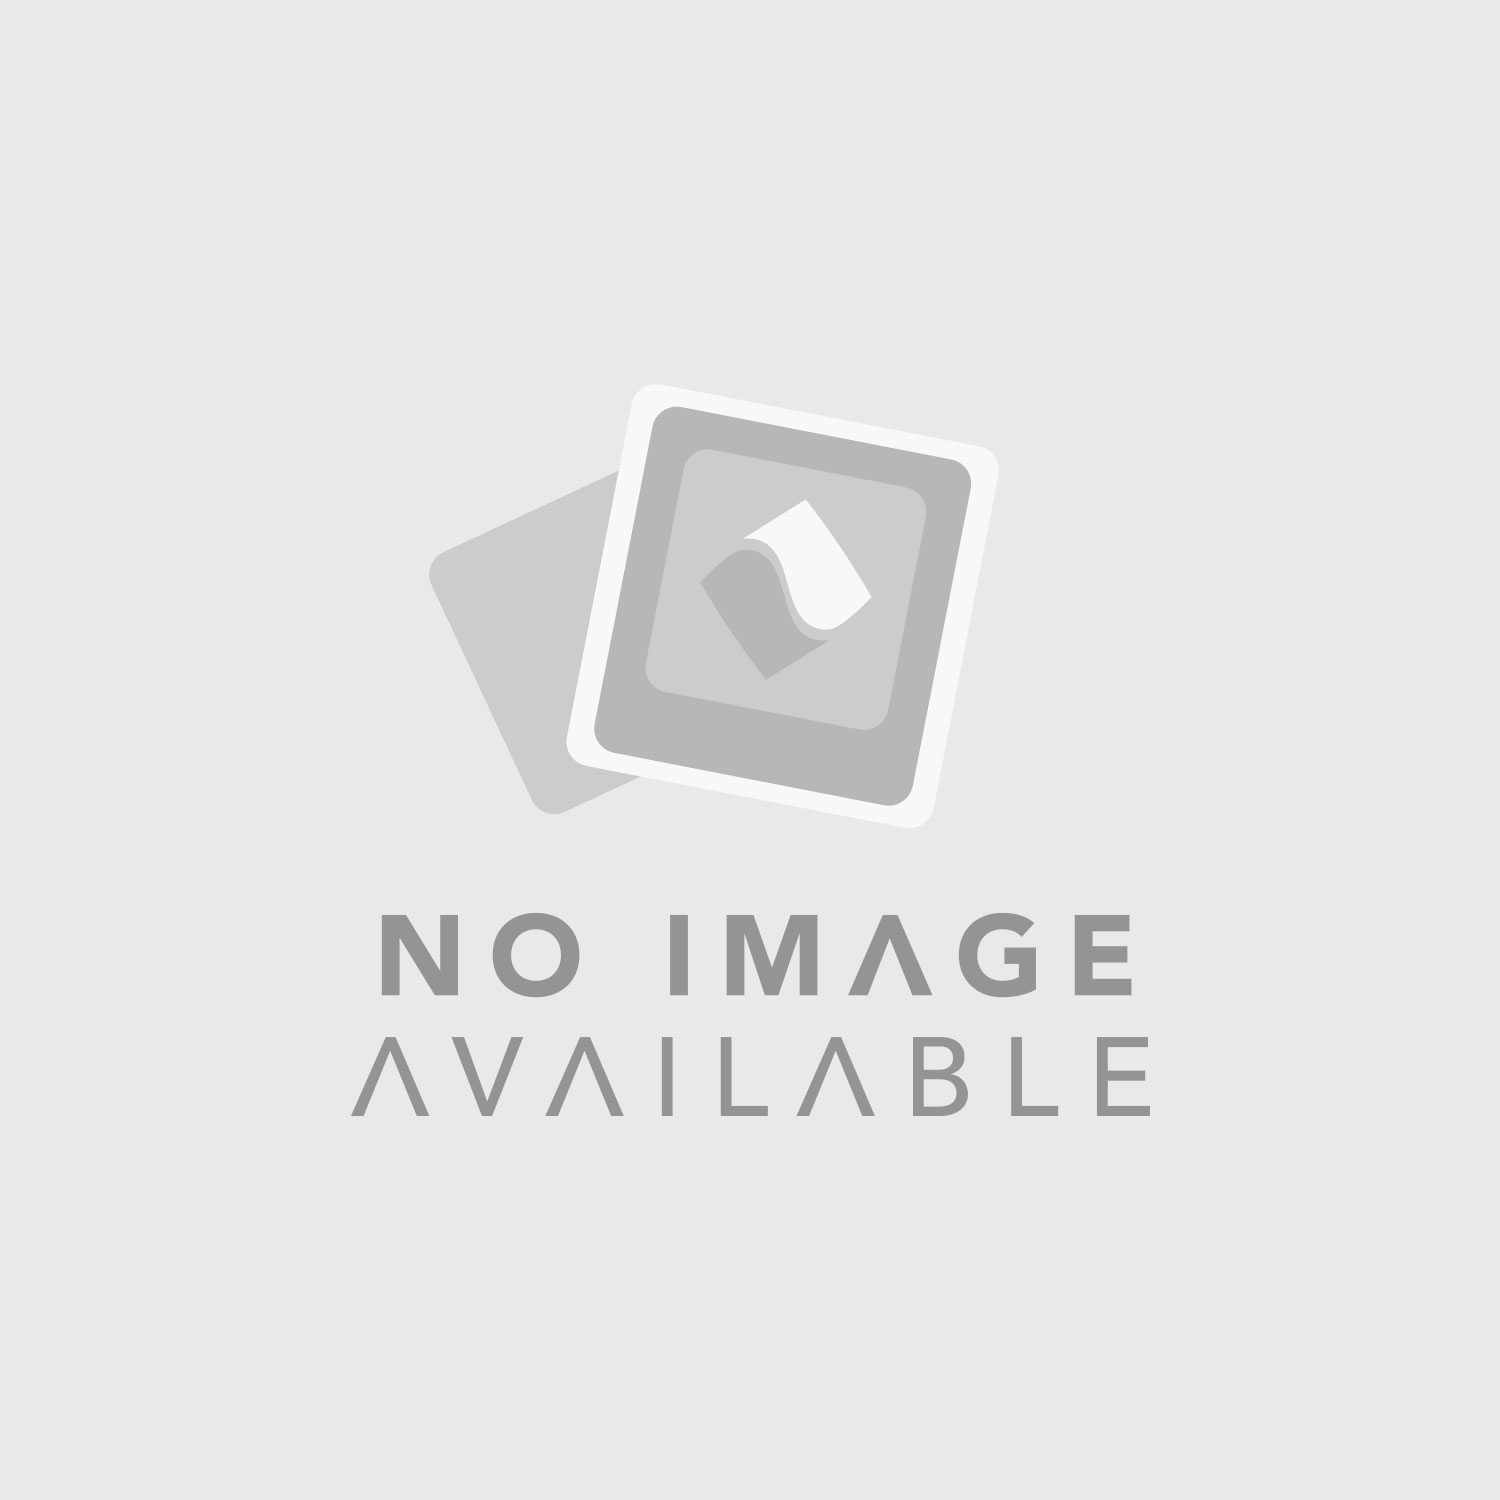 Avid Pro Tools 1-Year Subscription Renewal for Perpetual License (Boxed, Academic Institution)